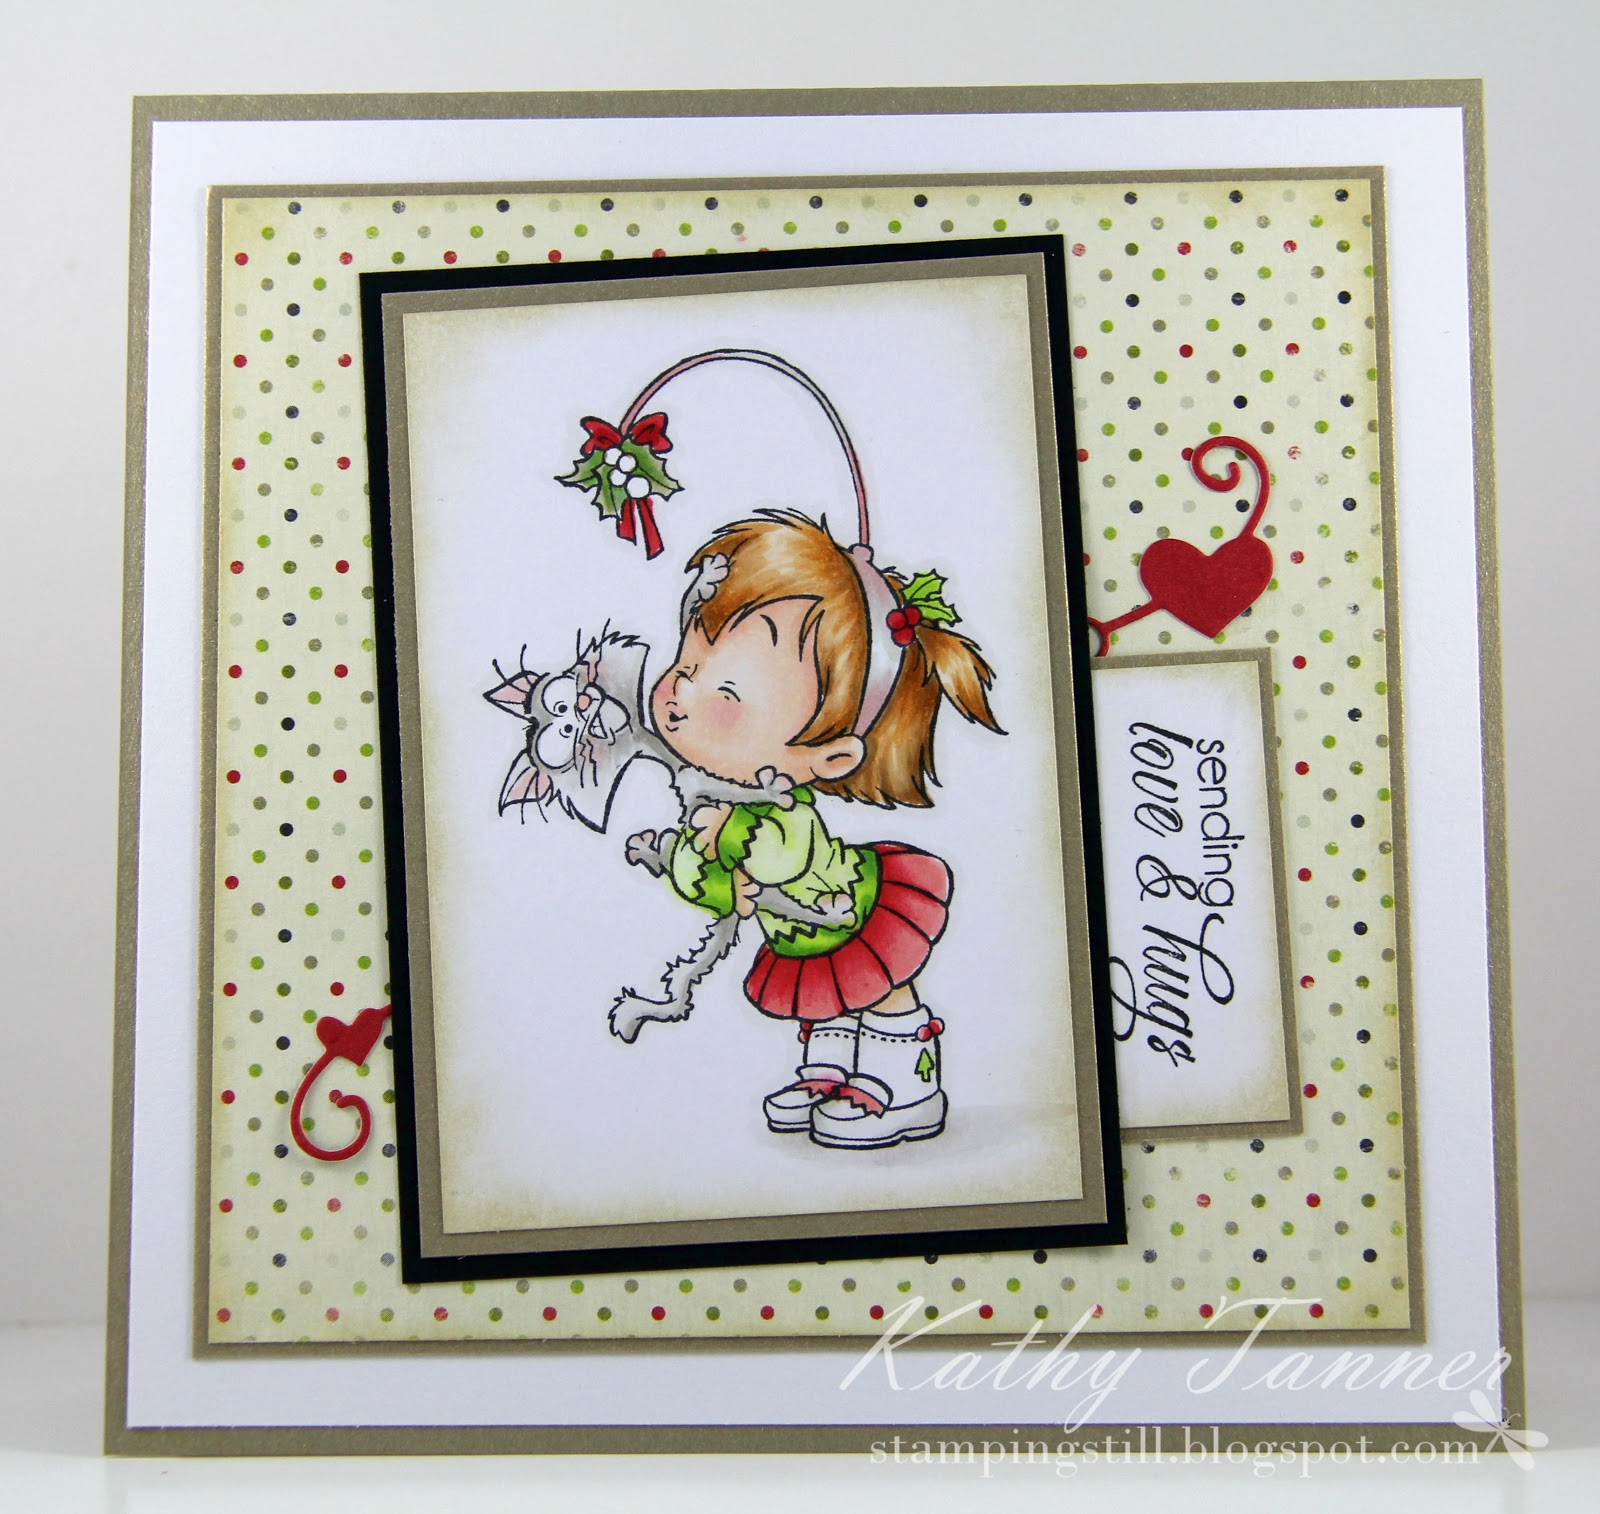 cc designs, kisses, christmas, heart border die